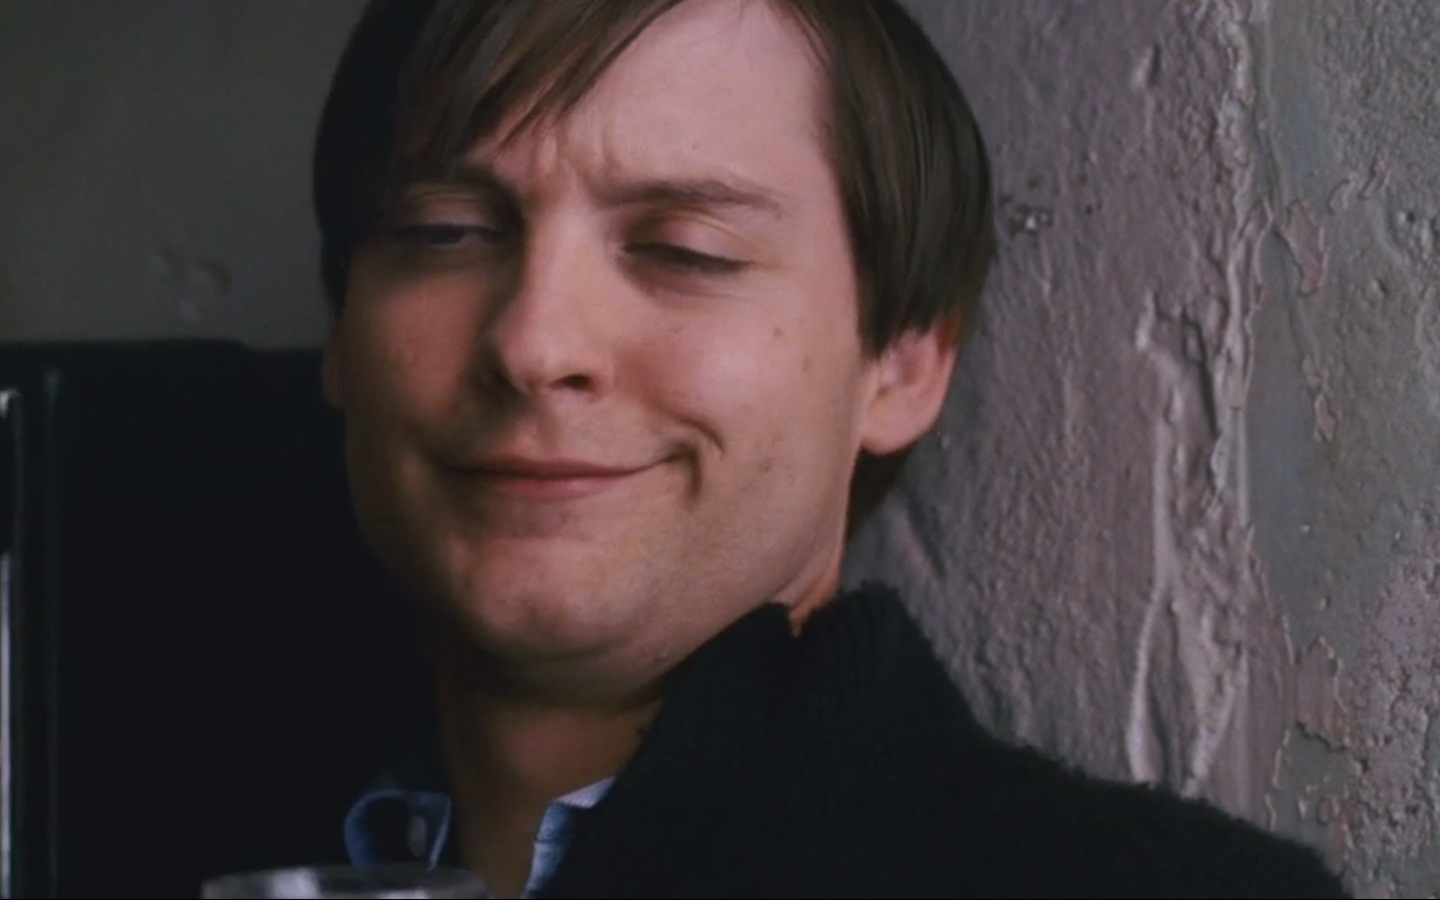 1440x900 - Tobey Maguire Wallpapers 24